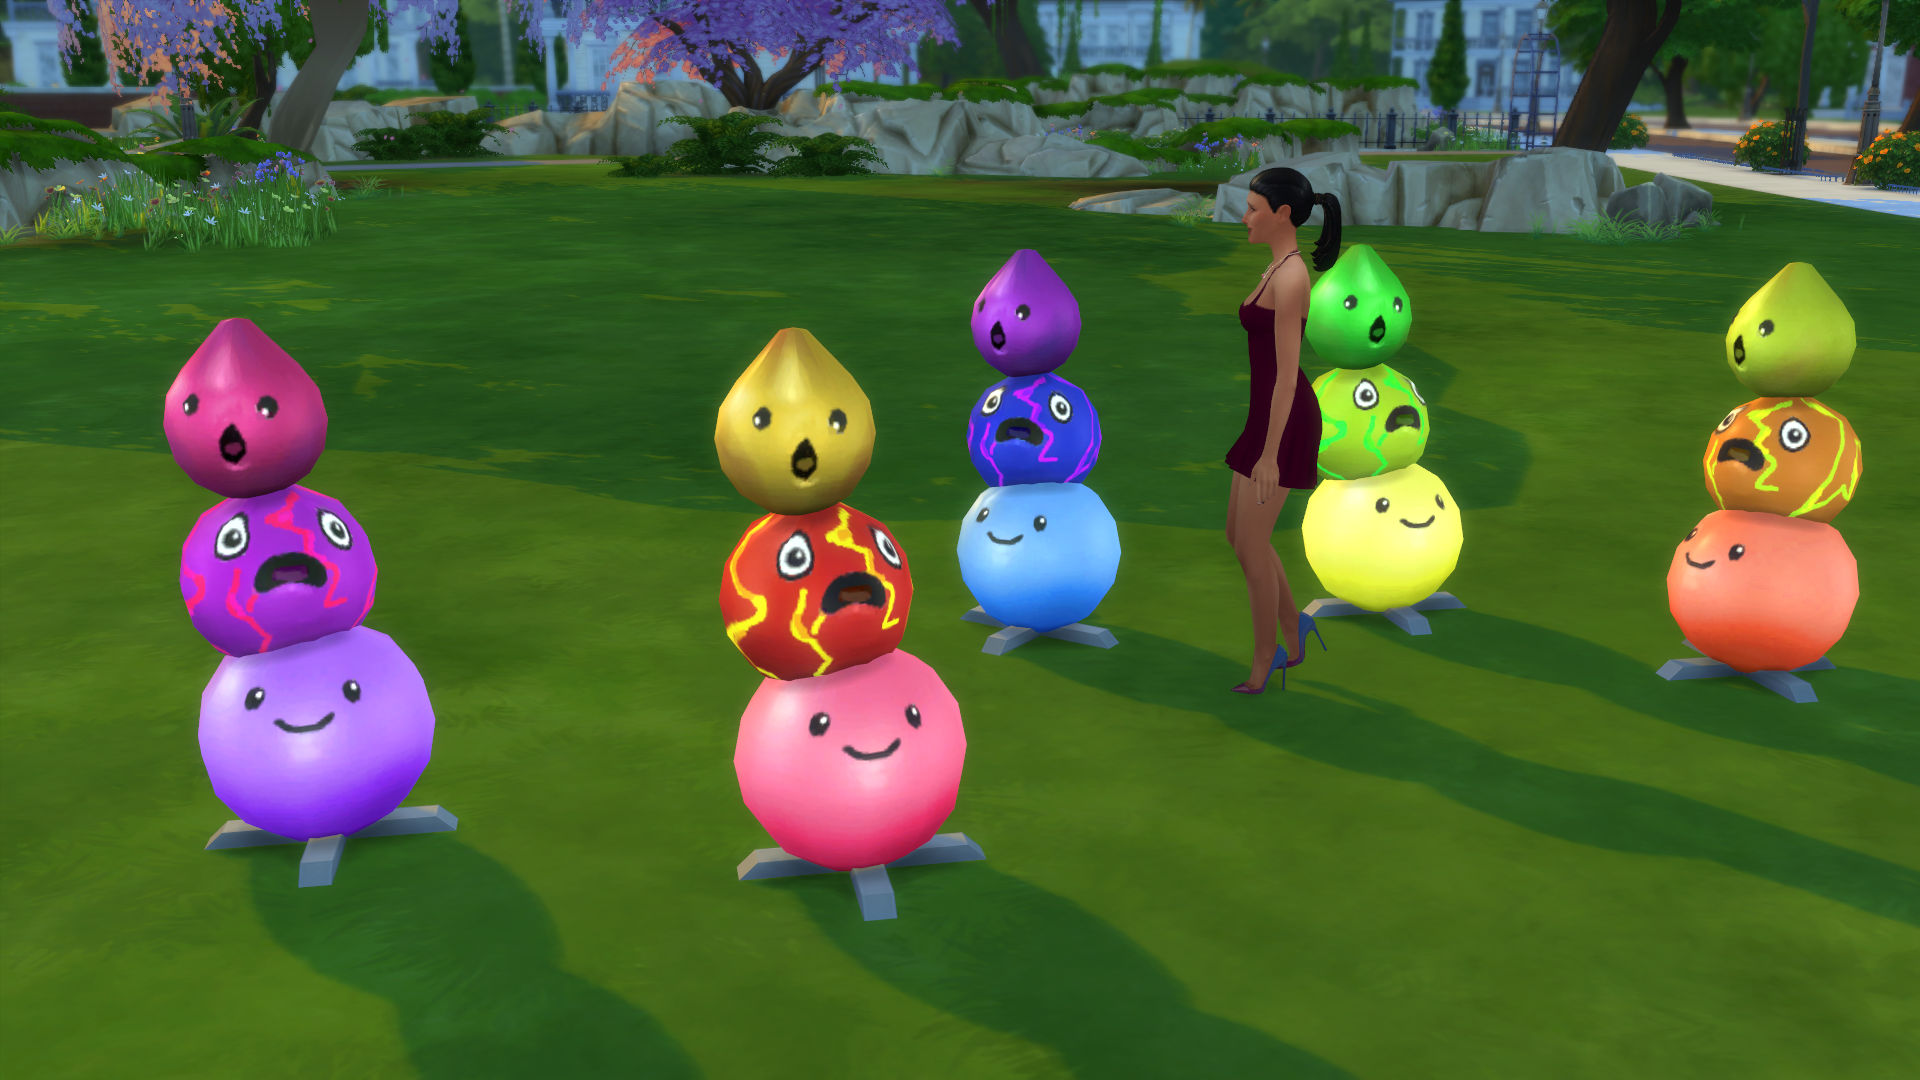 Mod The Sims Slime Rancher Glowing Floor Sculptures The